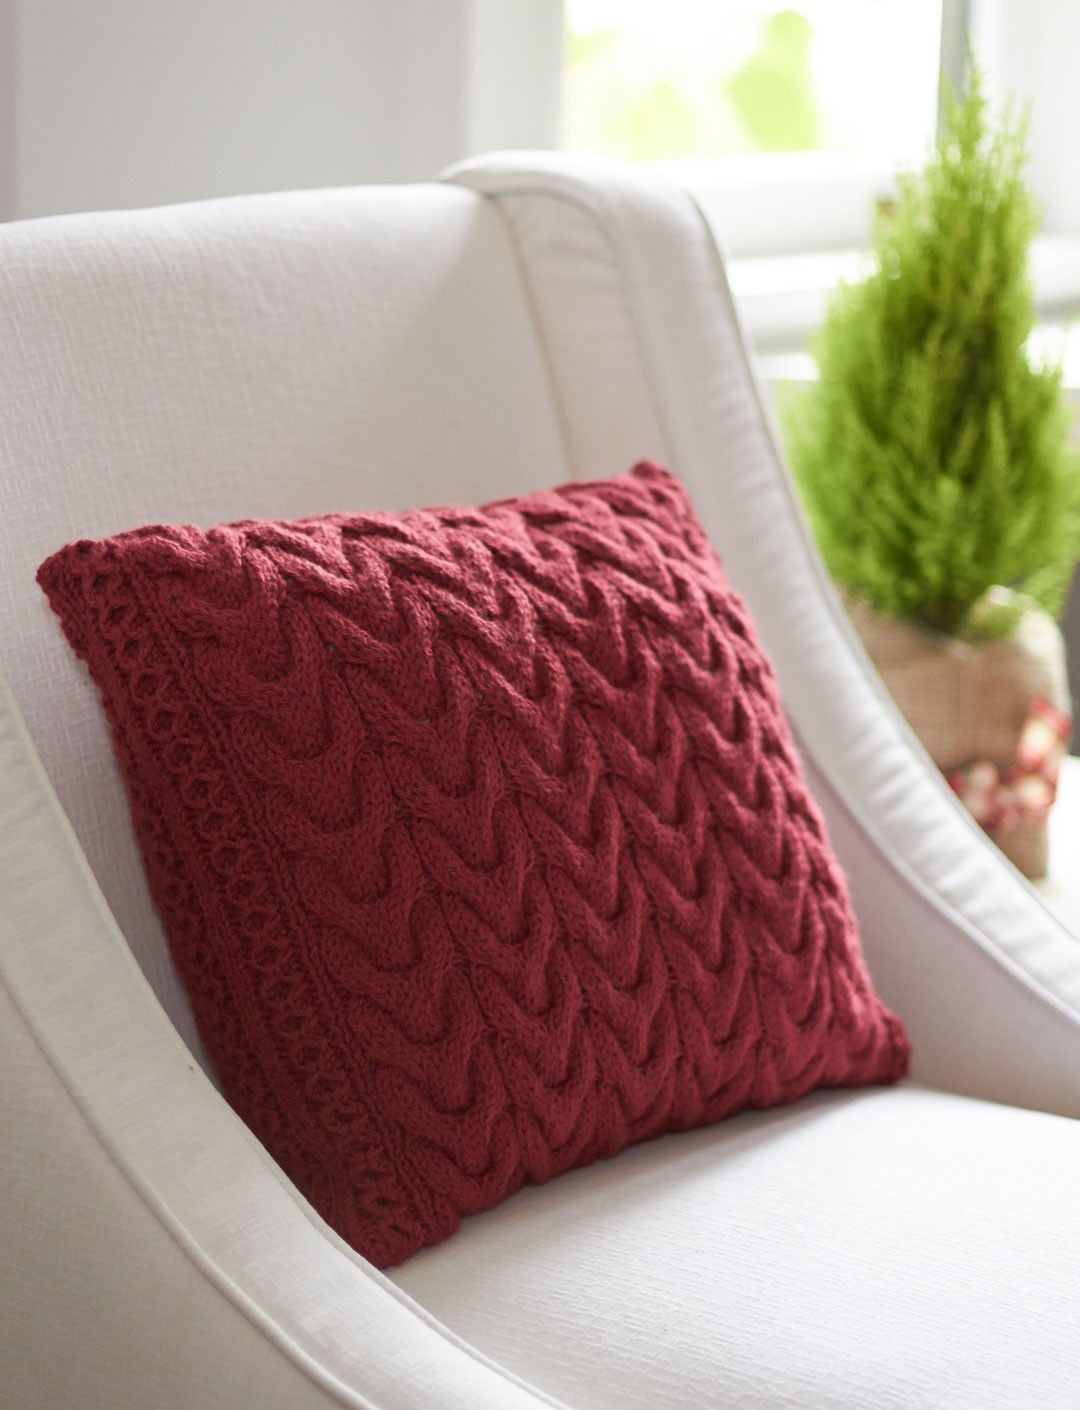 Yarnspirations patons christmas cables pillow patterns yarnspirations patons christmas cables pillow patterns yarnspirations free christmas knitting bankloansurffo Choice Image